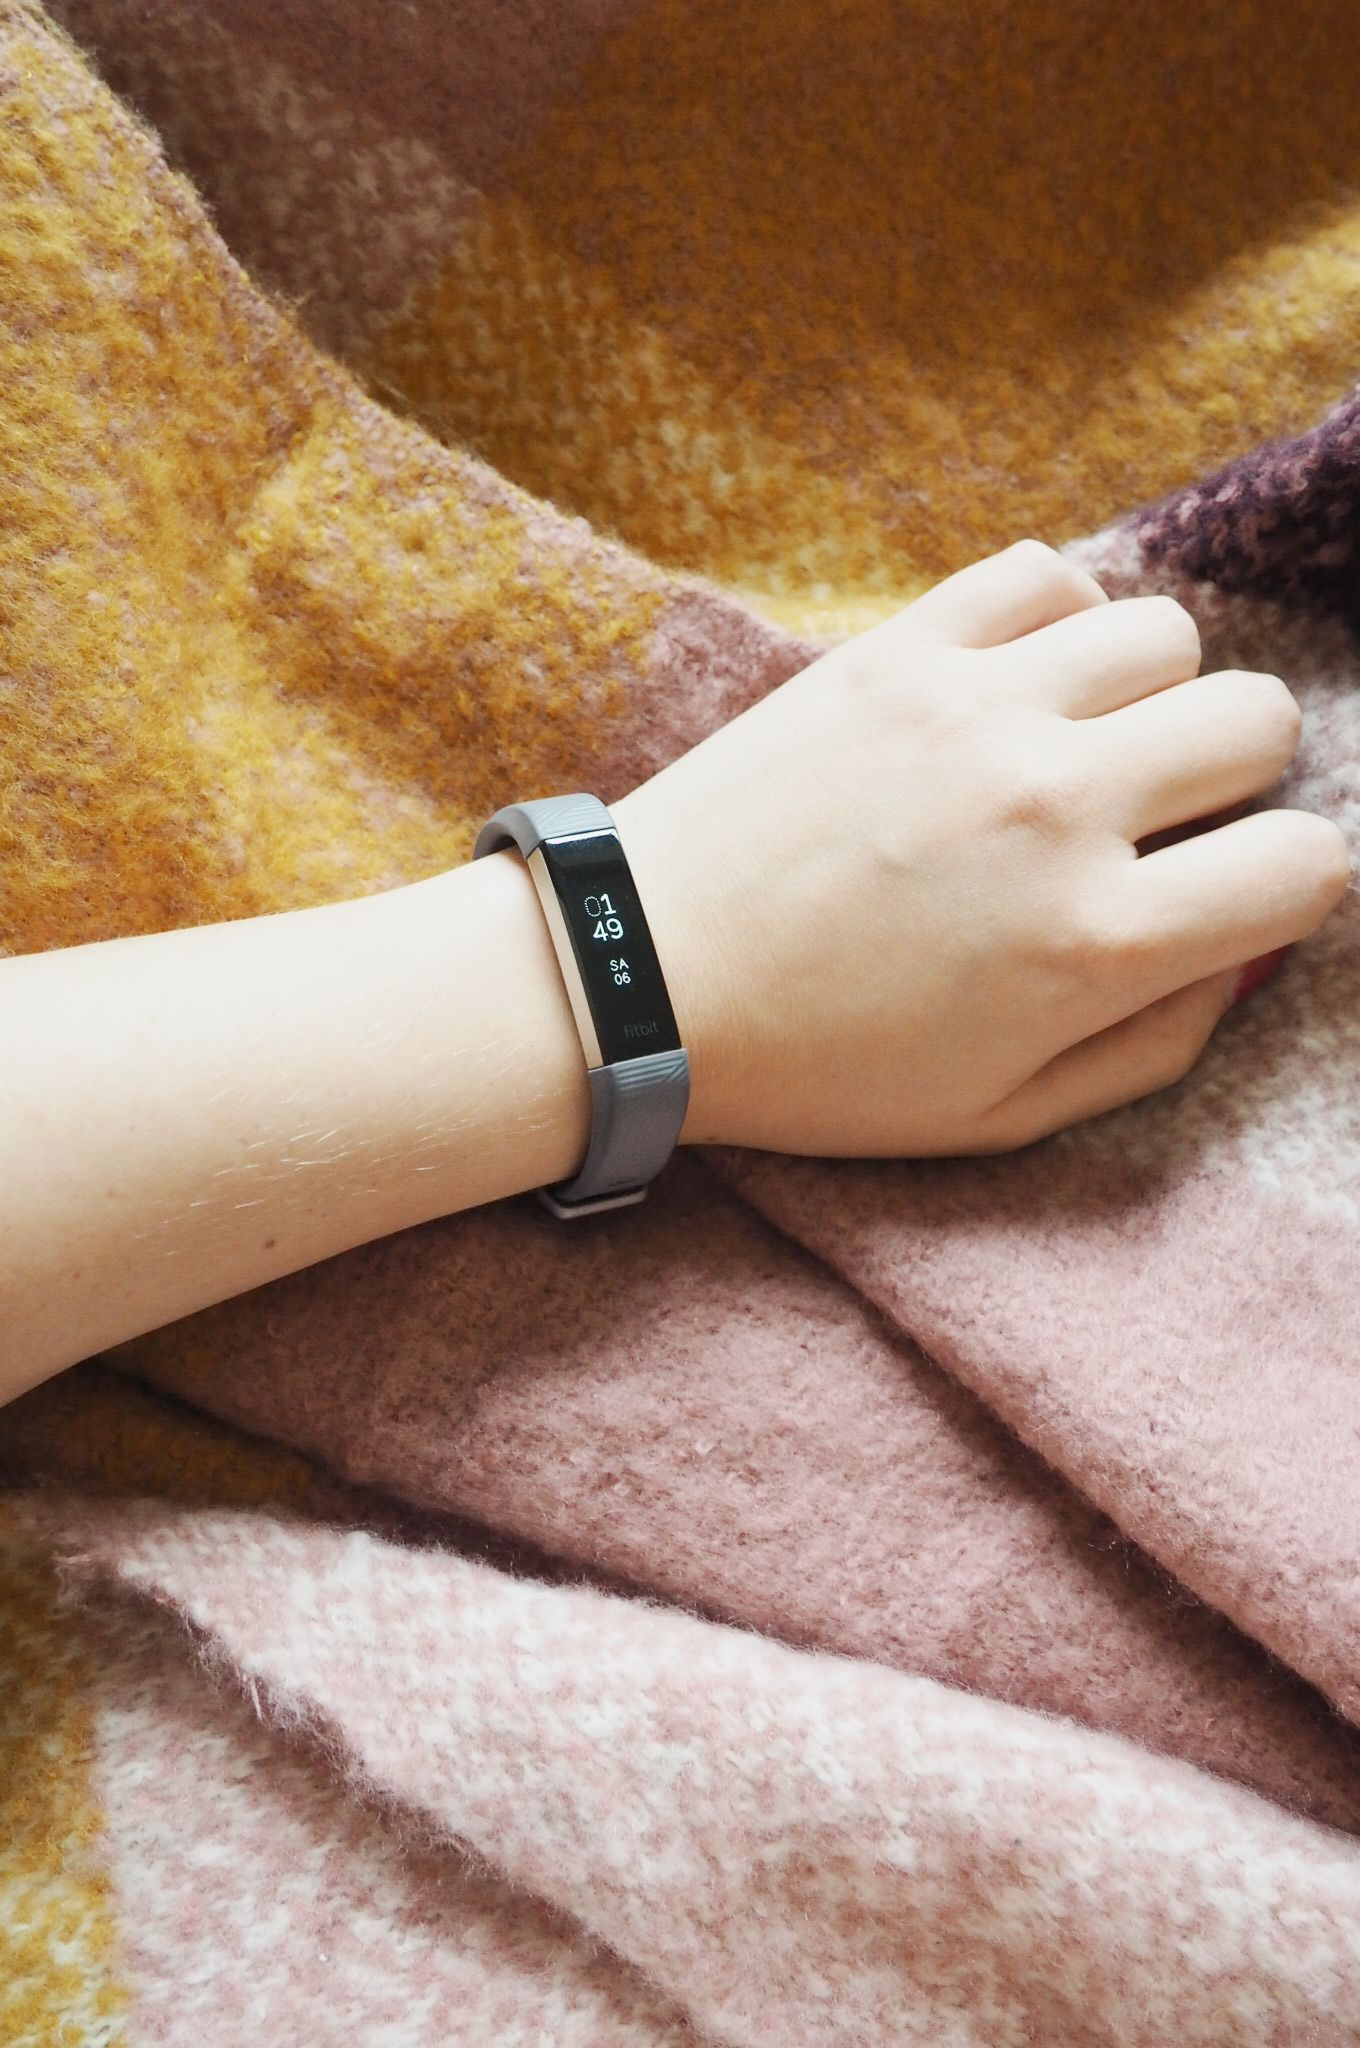 Using a fitness tracker to change your habits